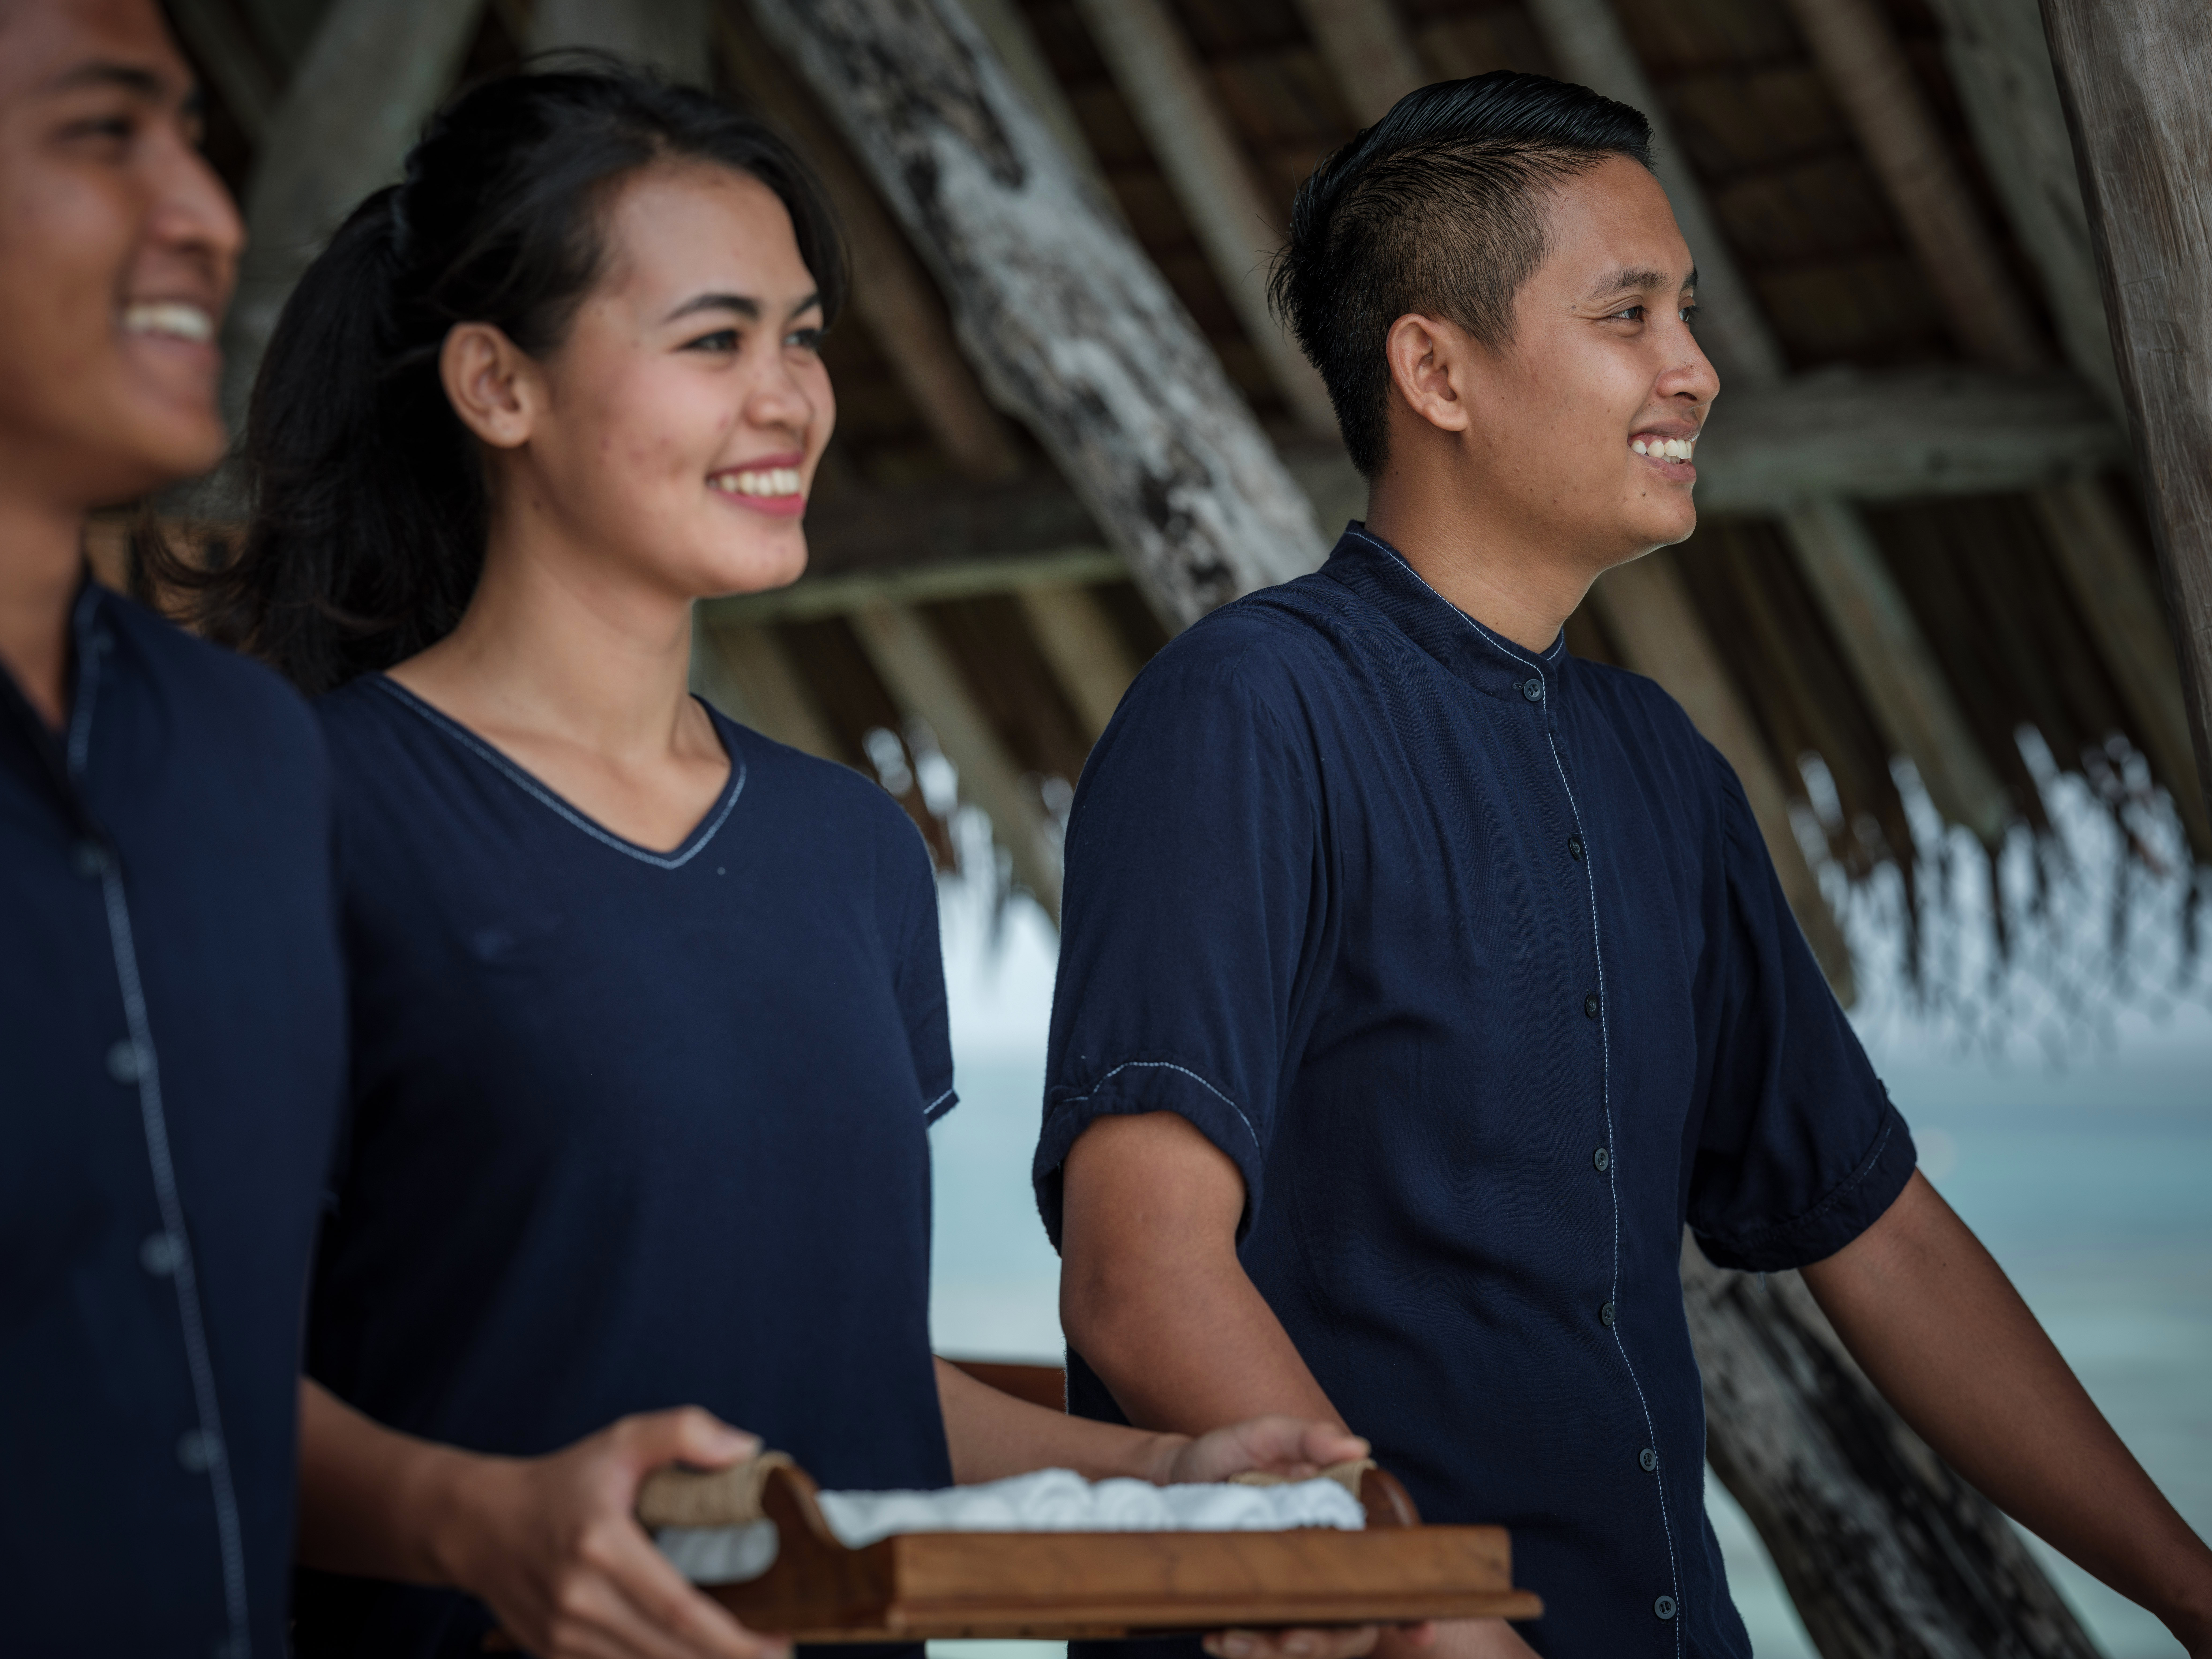 smiling_males_female_staff_holding_towel_tray_bawah_uniform_standing_at_jetty (2)-jpg